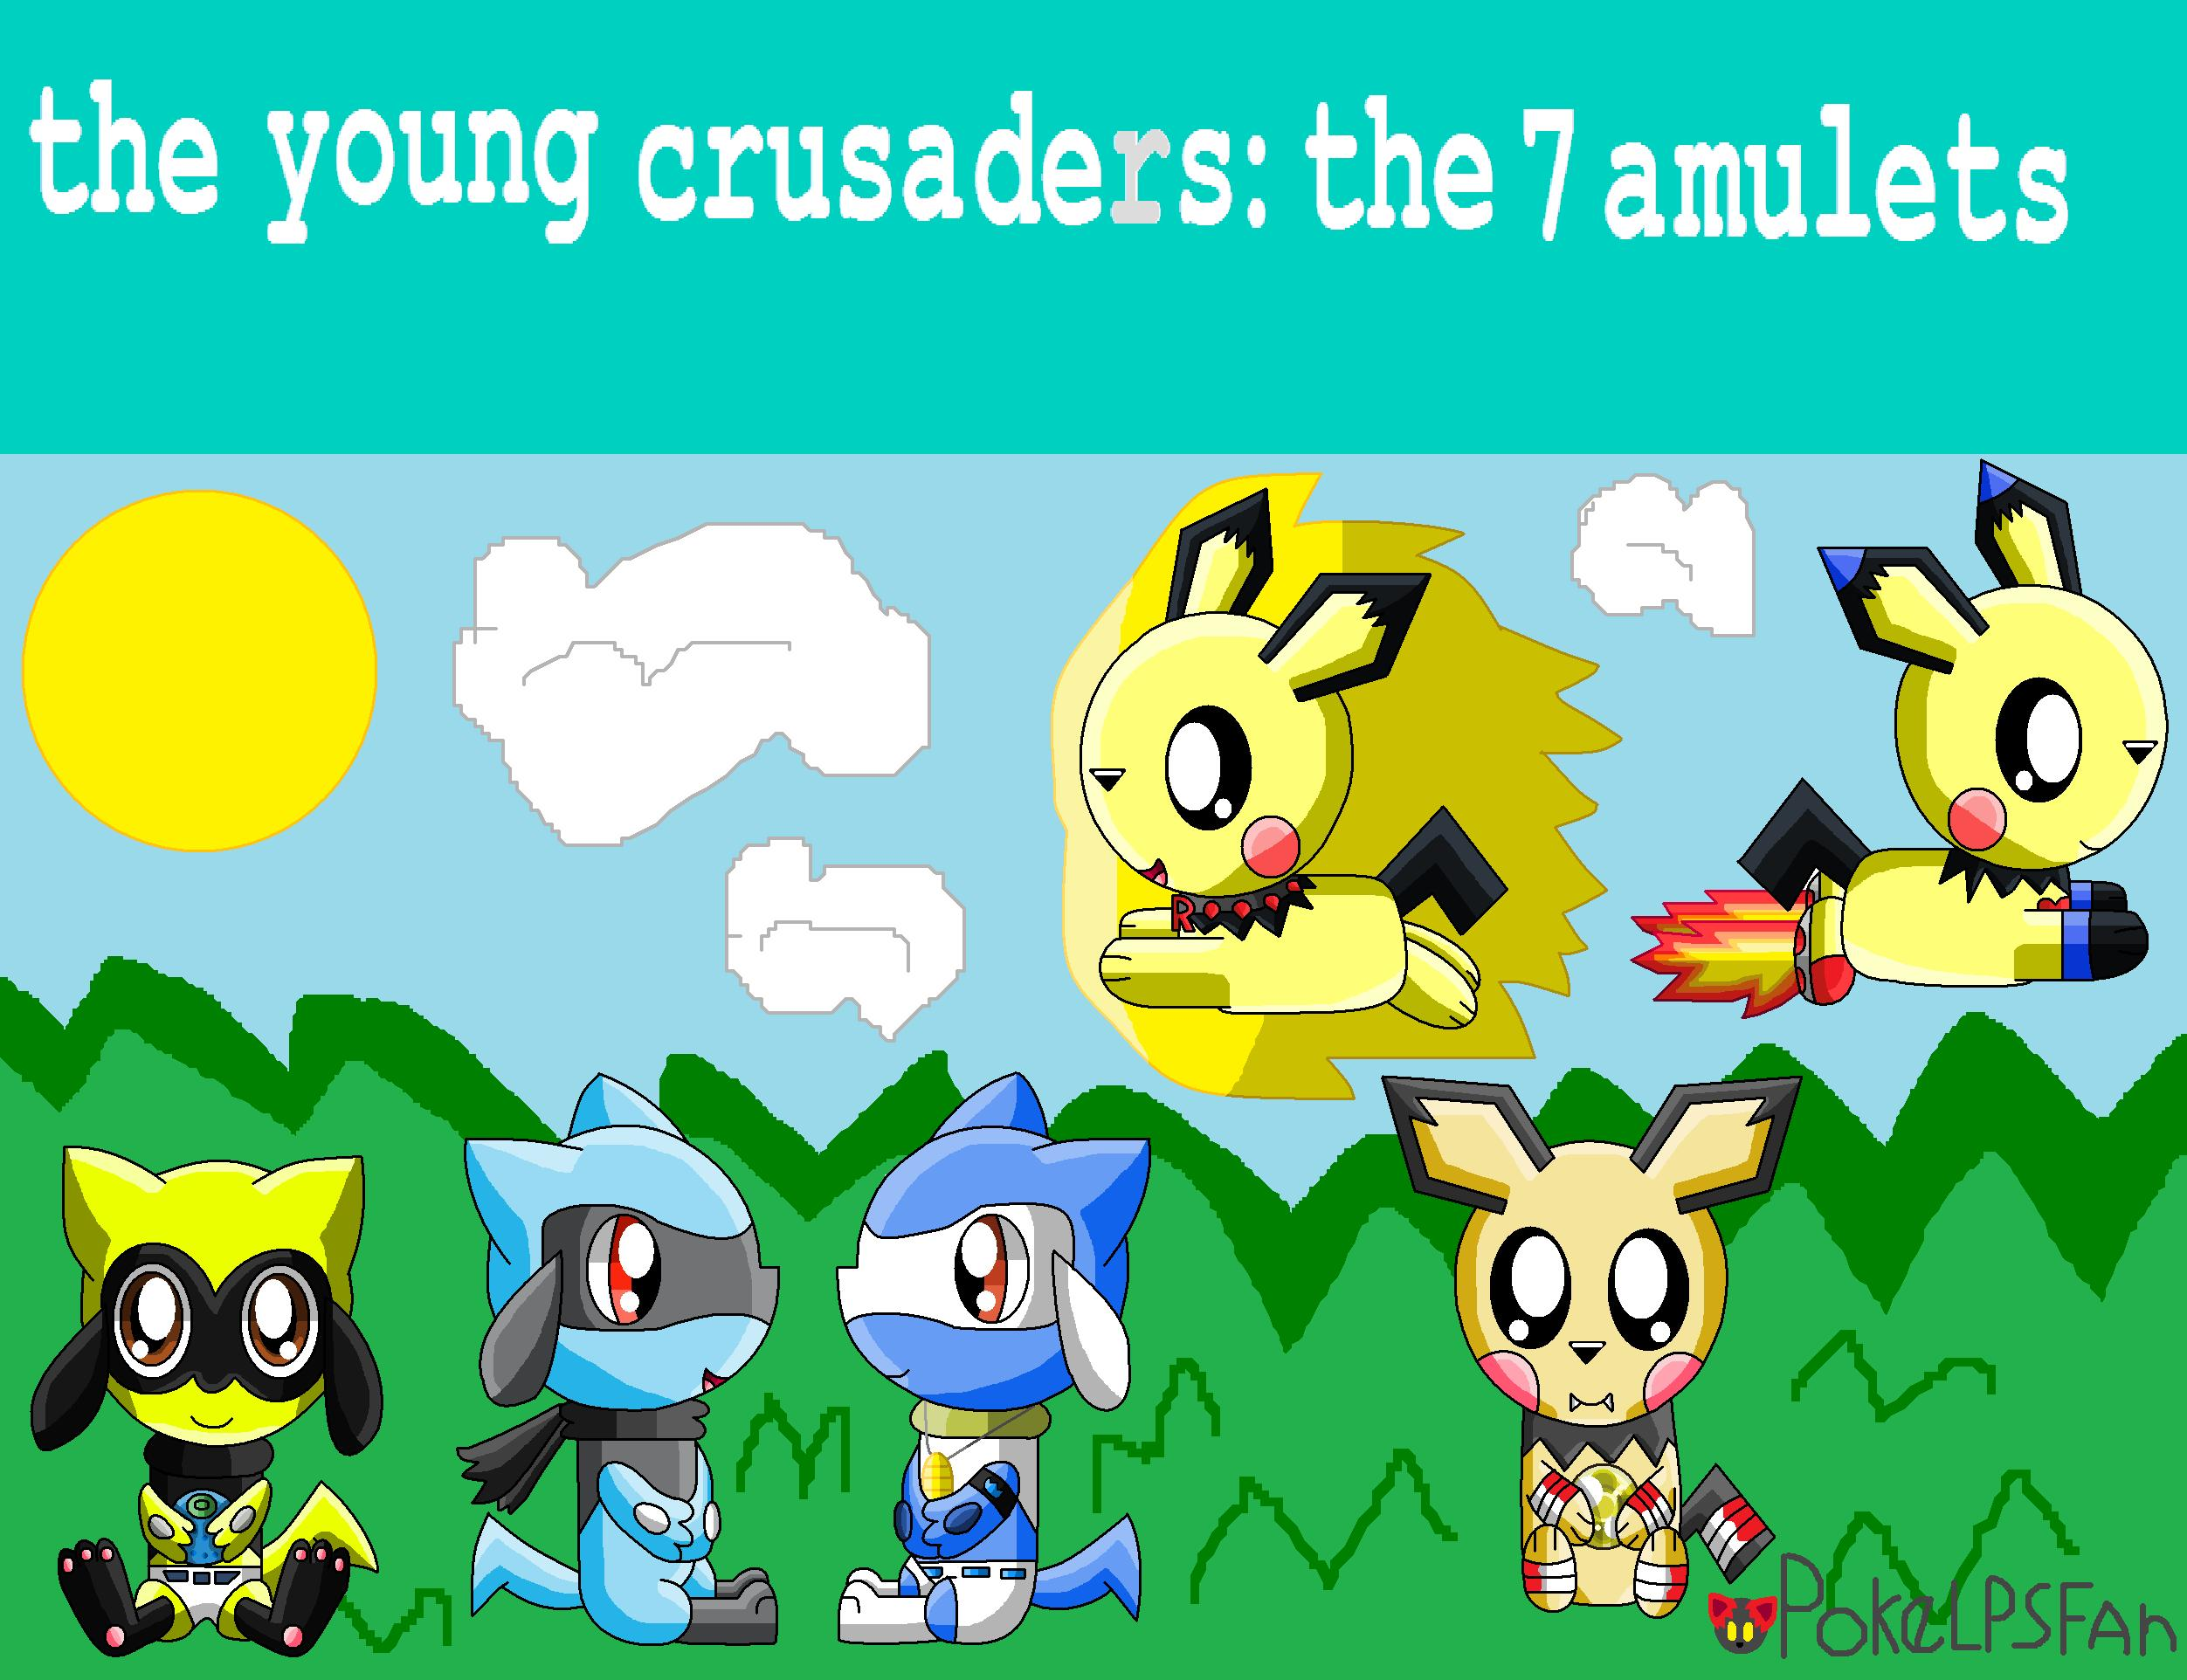 The Young Crusaders my cute version by pokemonlpsfan